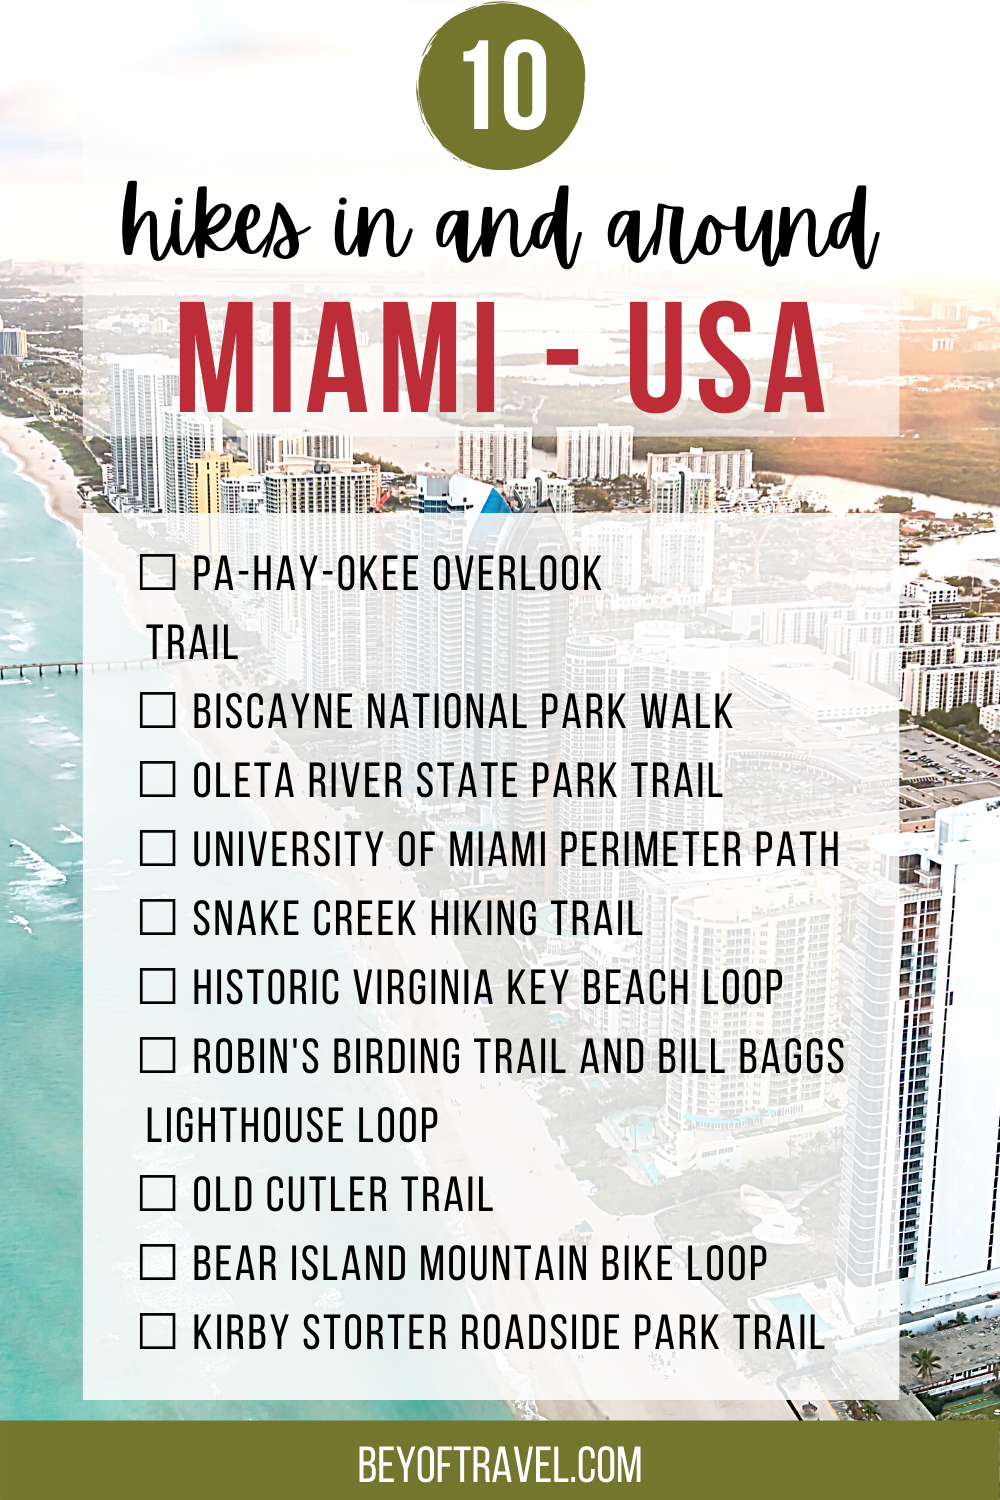 Best hikes in Miami